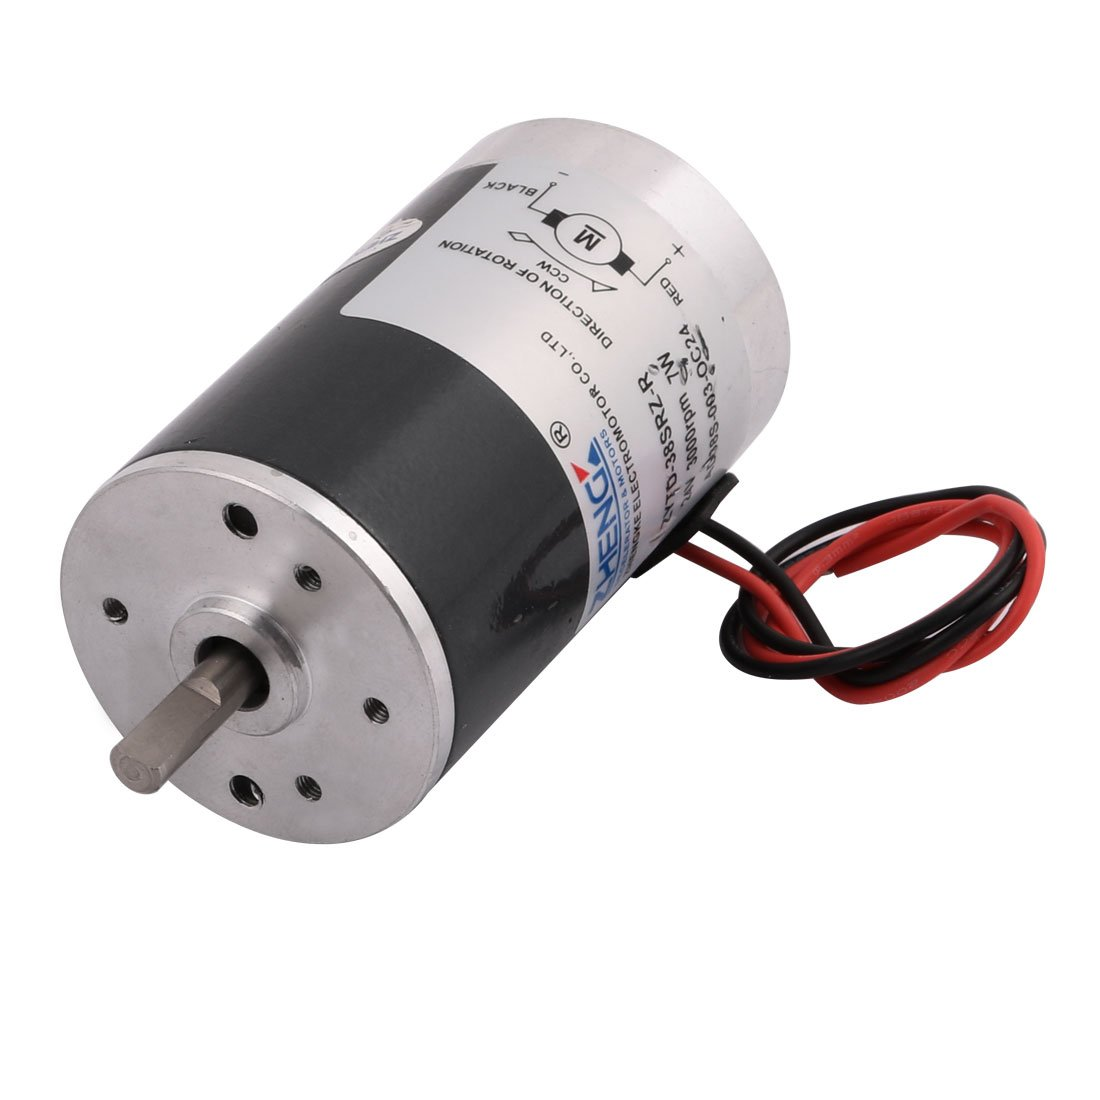 uxcell ZYTD-38SRZ-R DC 24V 3000RPM 7W Brushless D-Axis Speed Control Motor w Wire